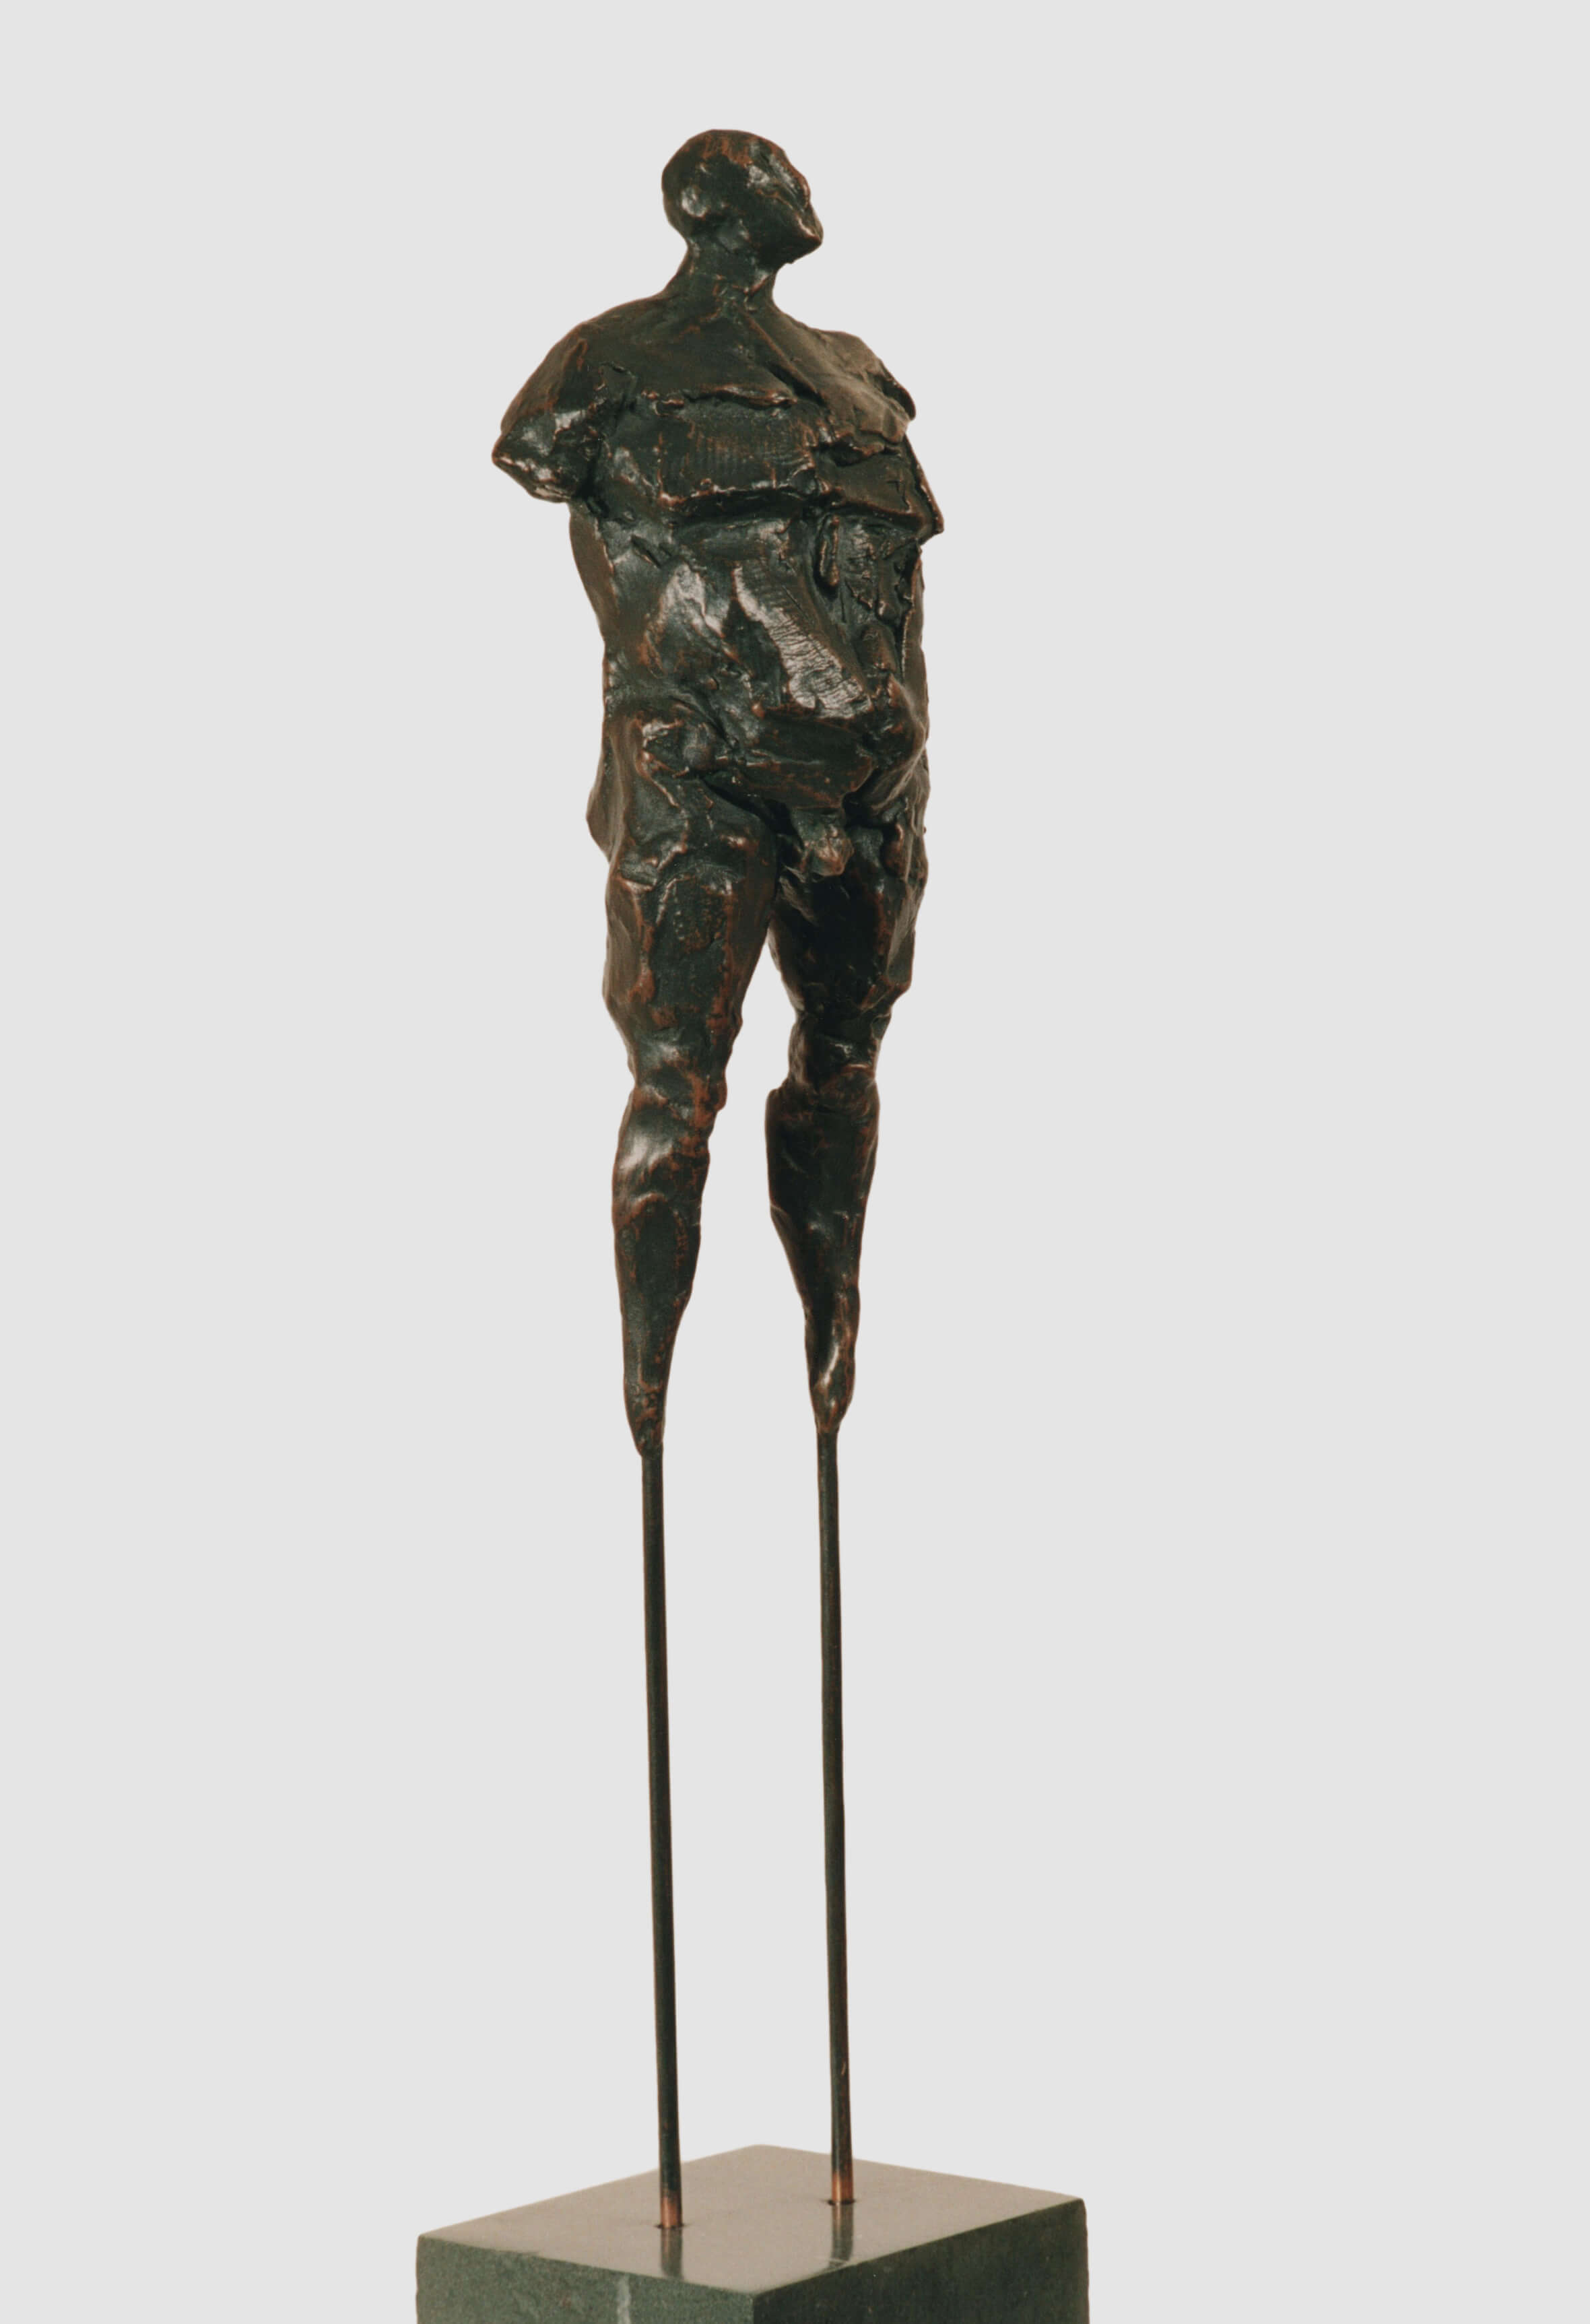 Man on Stilts (Bronze-Resin) 16cm x 160cm x 13cm